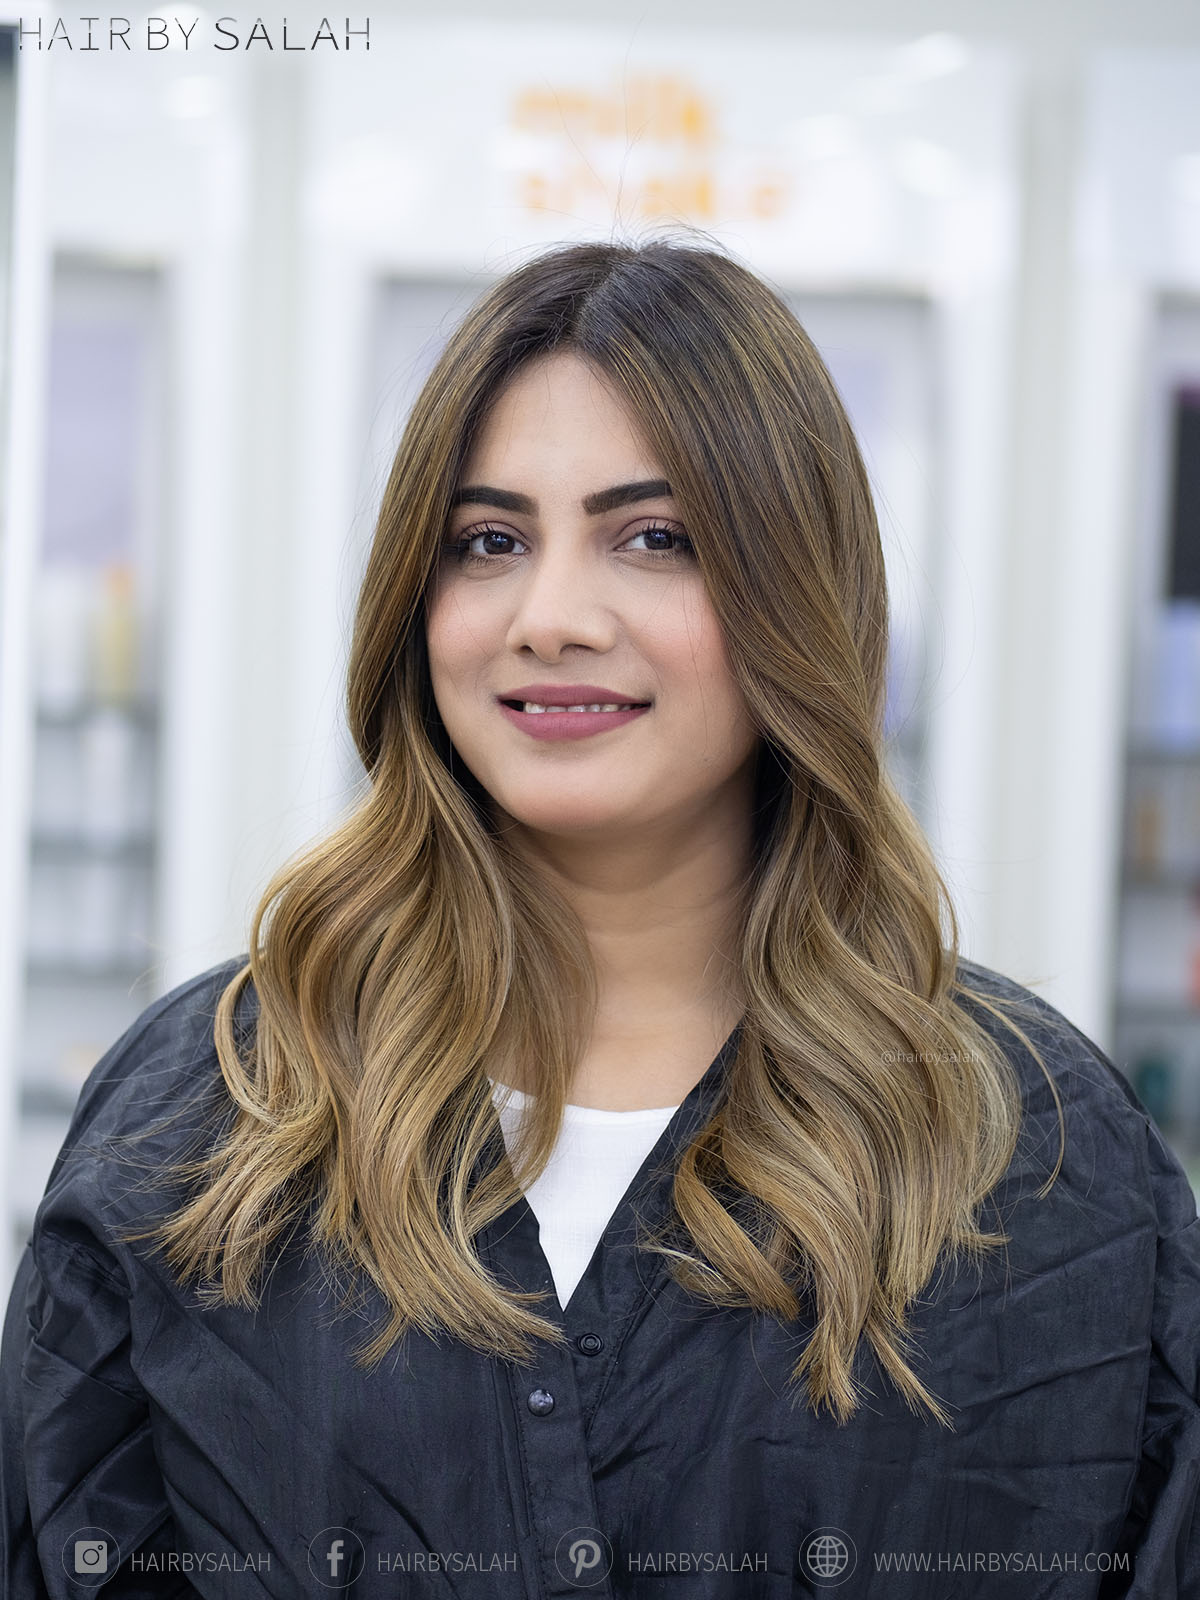 Hair Service from Hair By Salah and Hair Creators Colors Team